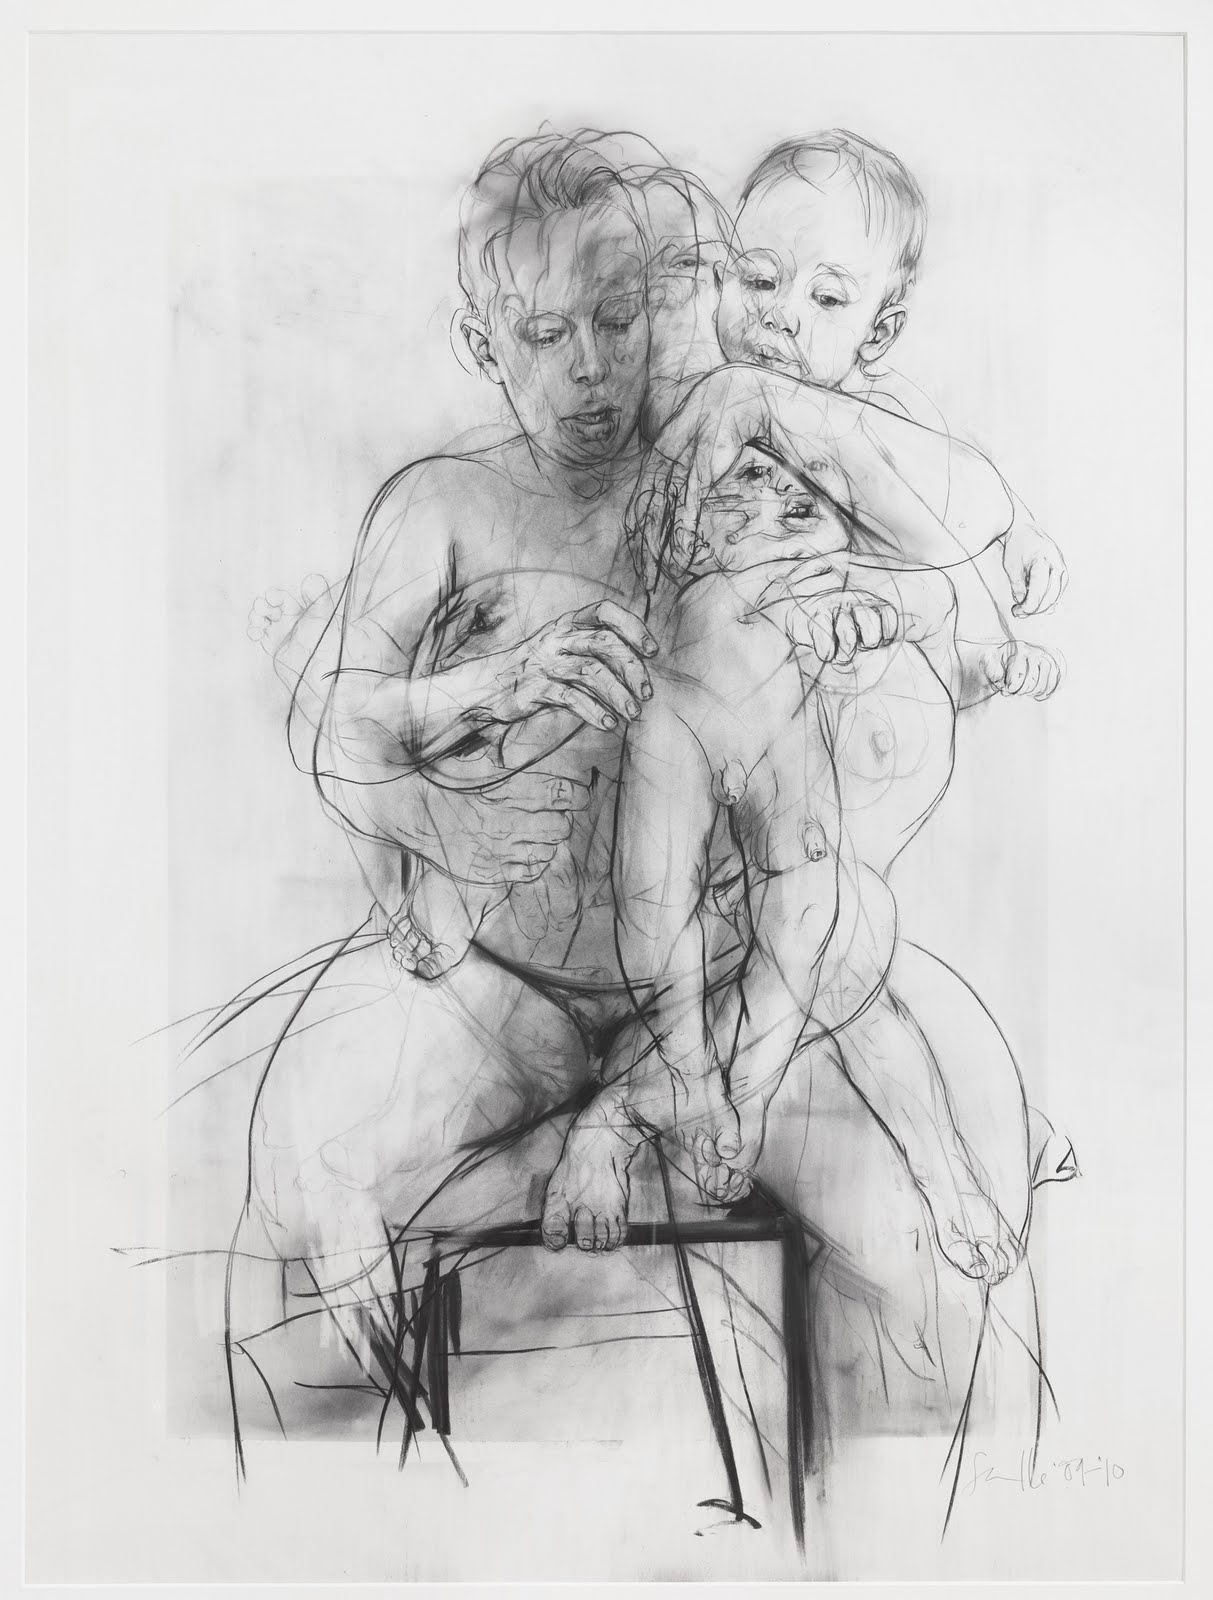 mom and son jap sex drawings 1000+ images about Figure on Pinterest | Plane geometry, Ballet and Ad reinhardt